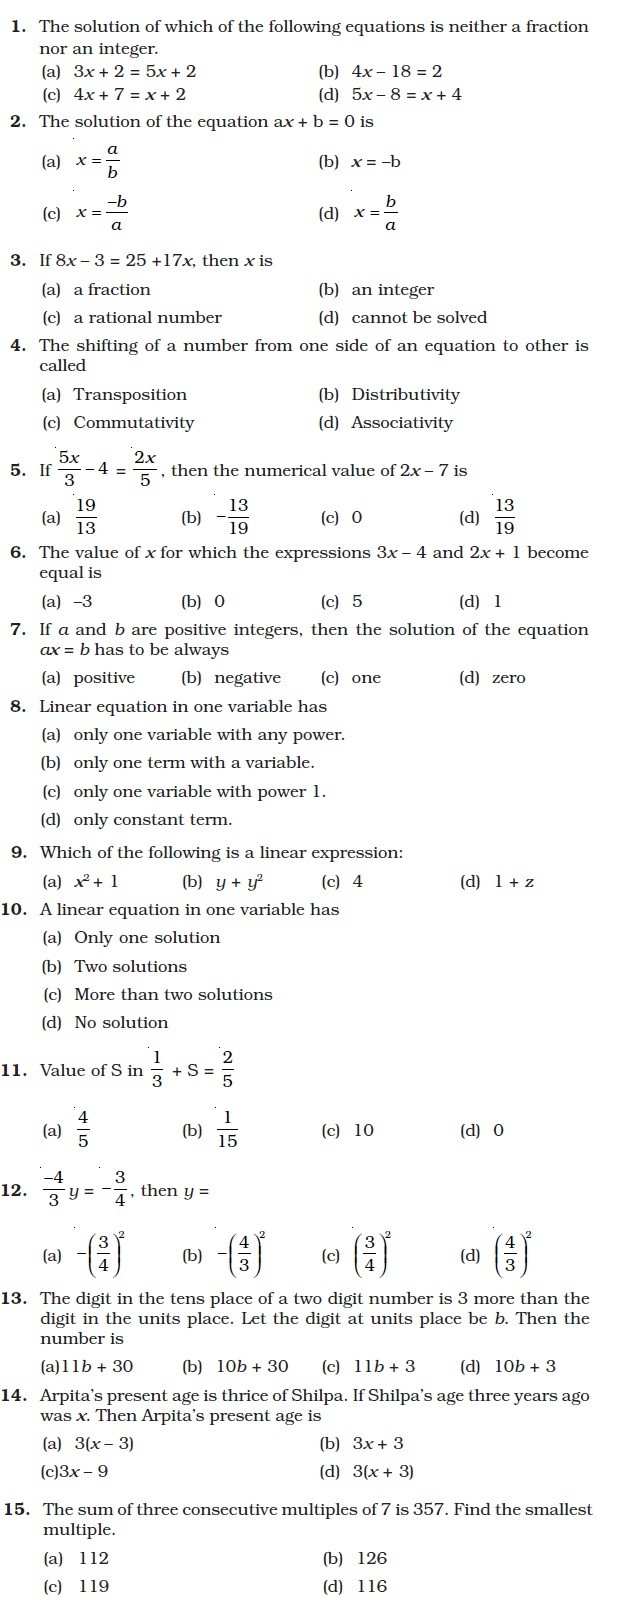 Linear Equation Worksheet with Answers